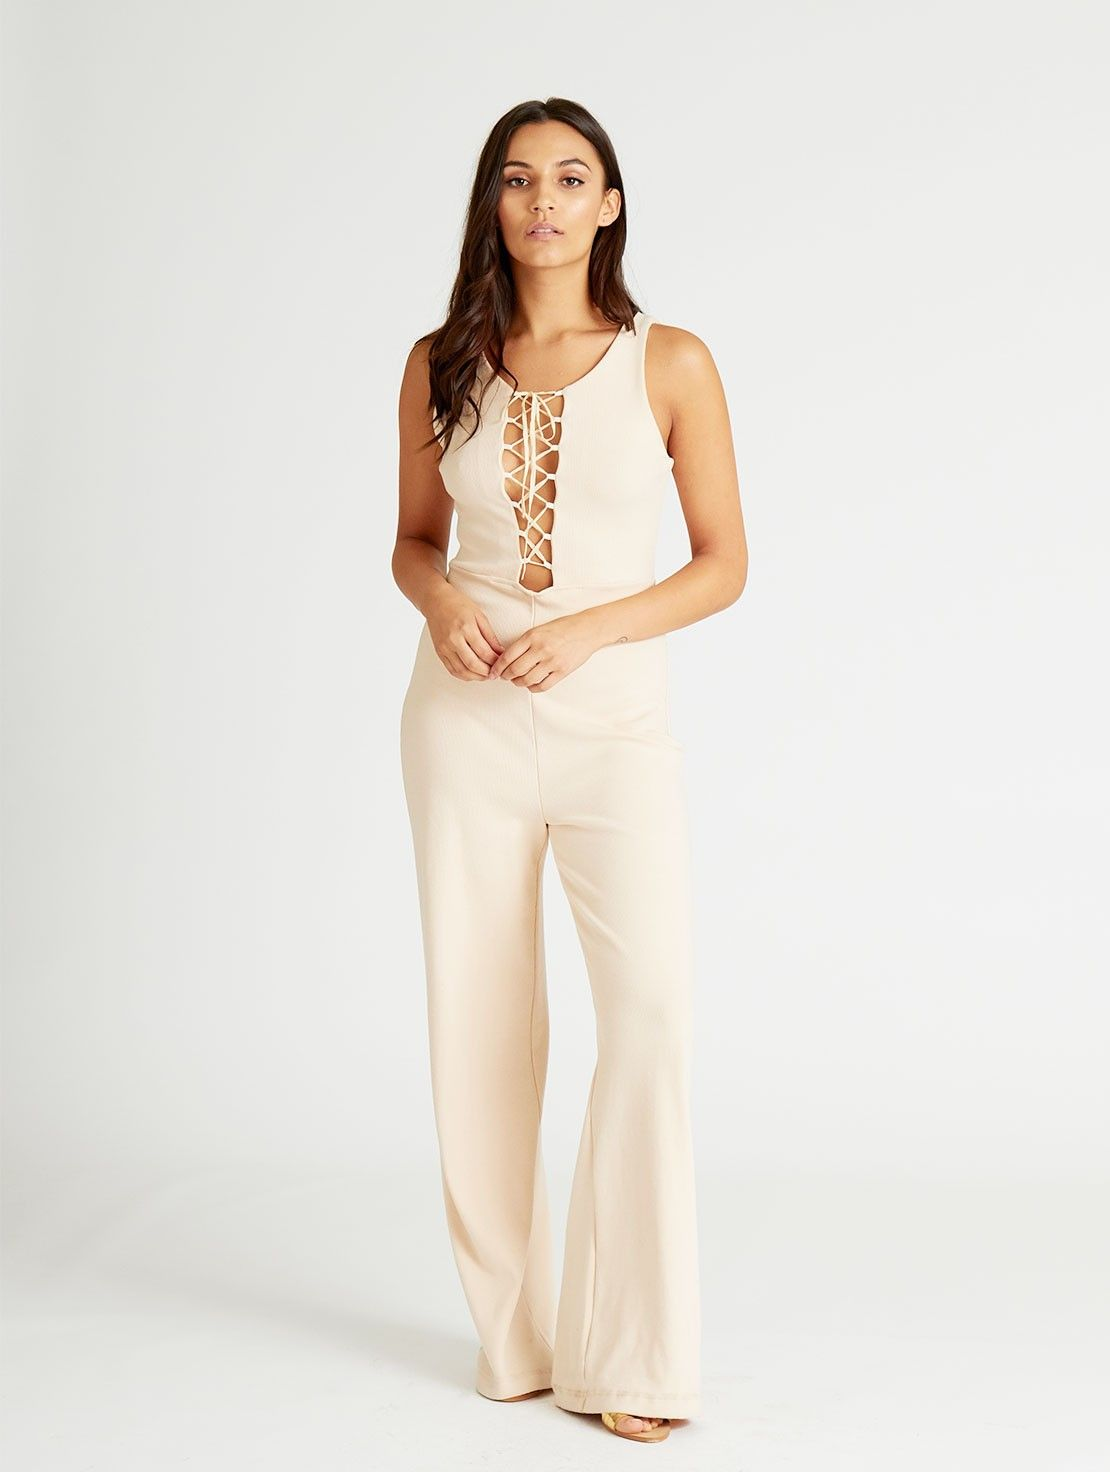 d75d8d886c Cali Cream Lace up Jumpsuit